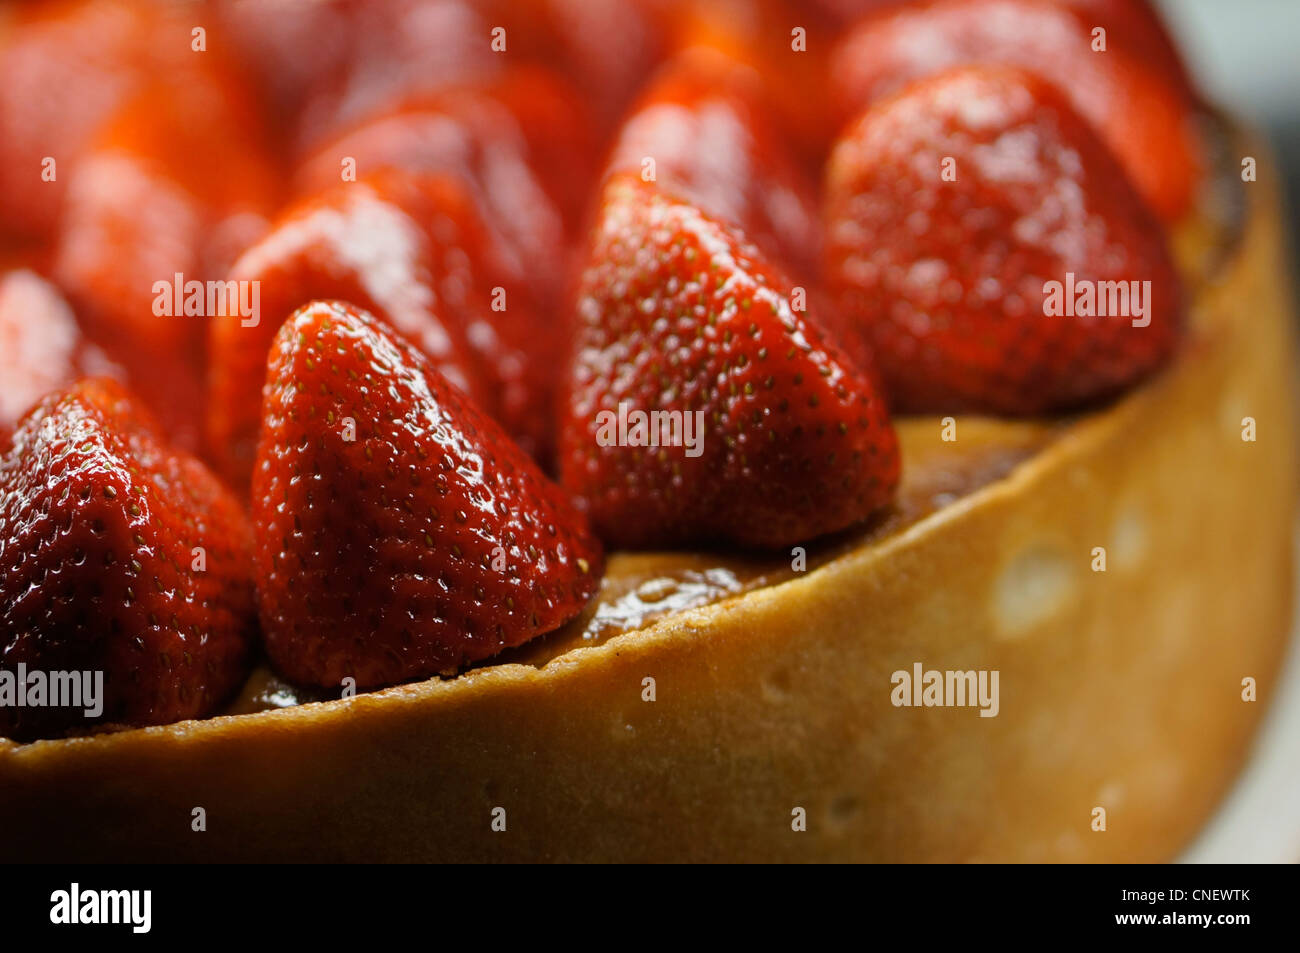 Strawberry Cheesecake, Cake with Whole Strawberries - Stock Image